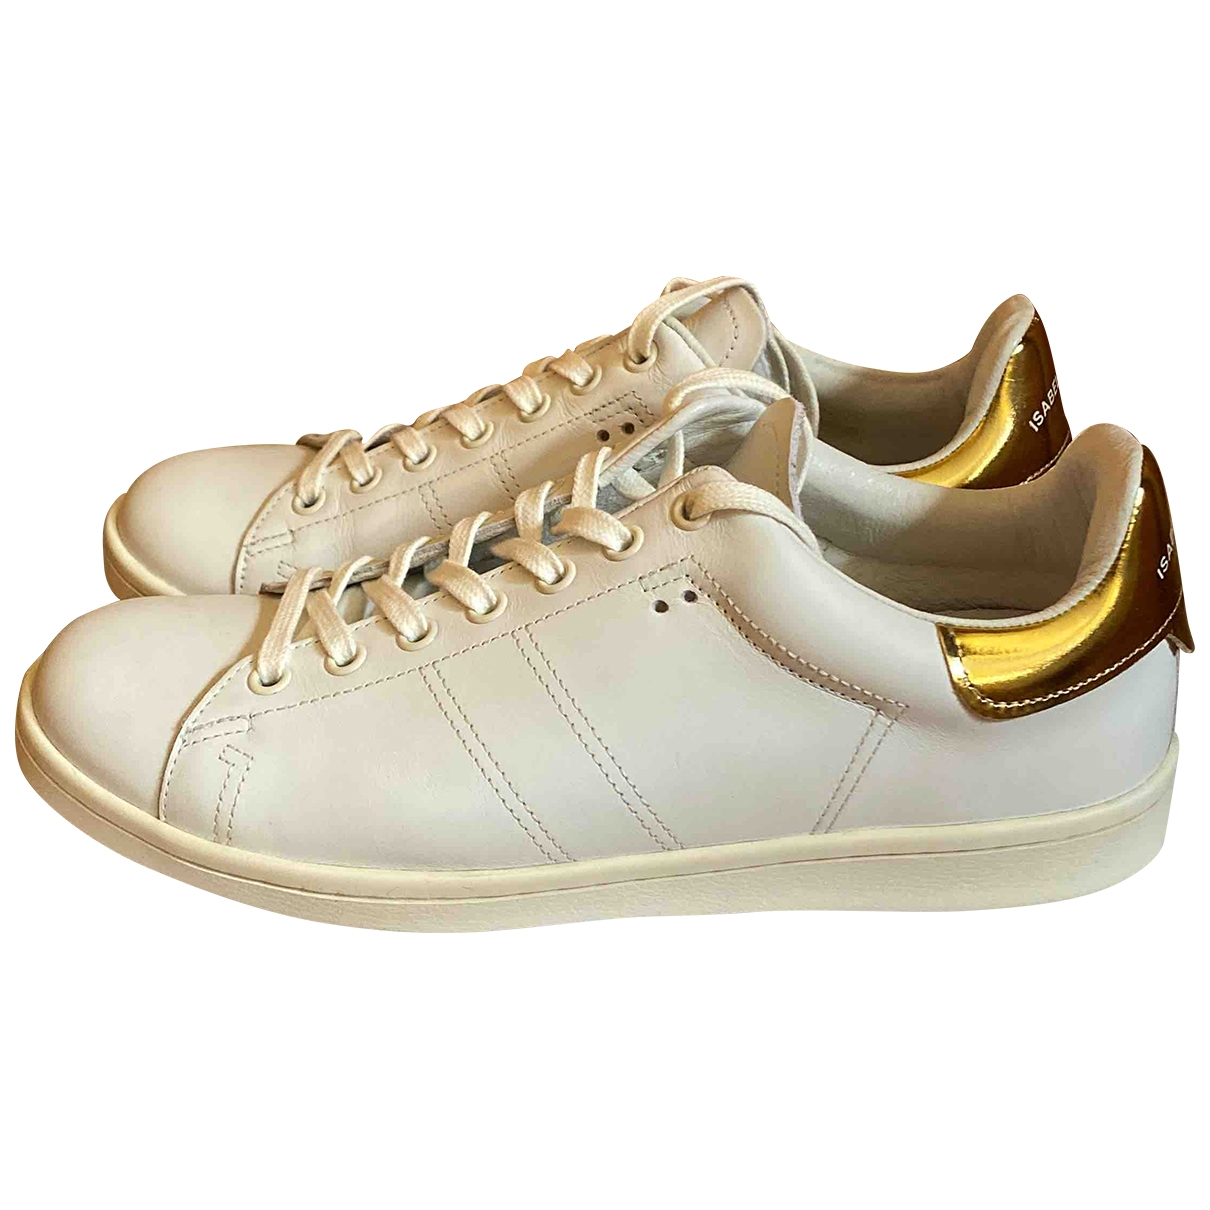 Isabel Marant Etoile \N White Leather Trainers for Women 39 EU